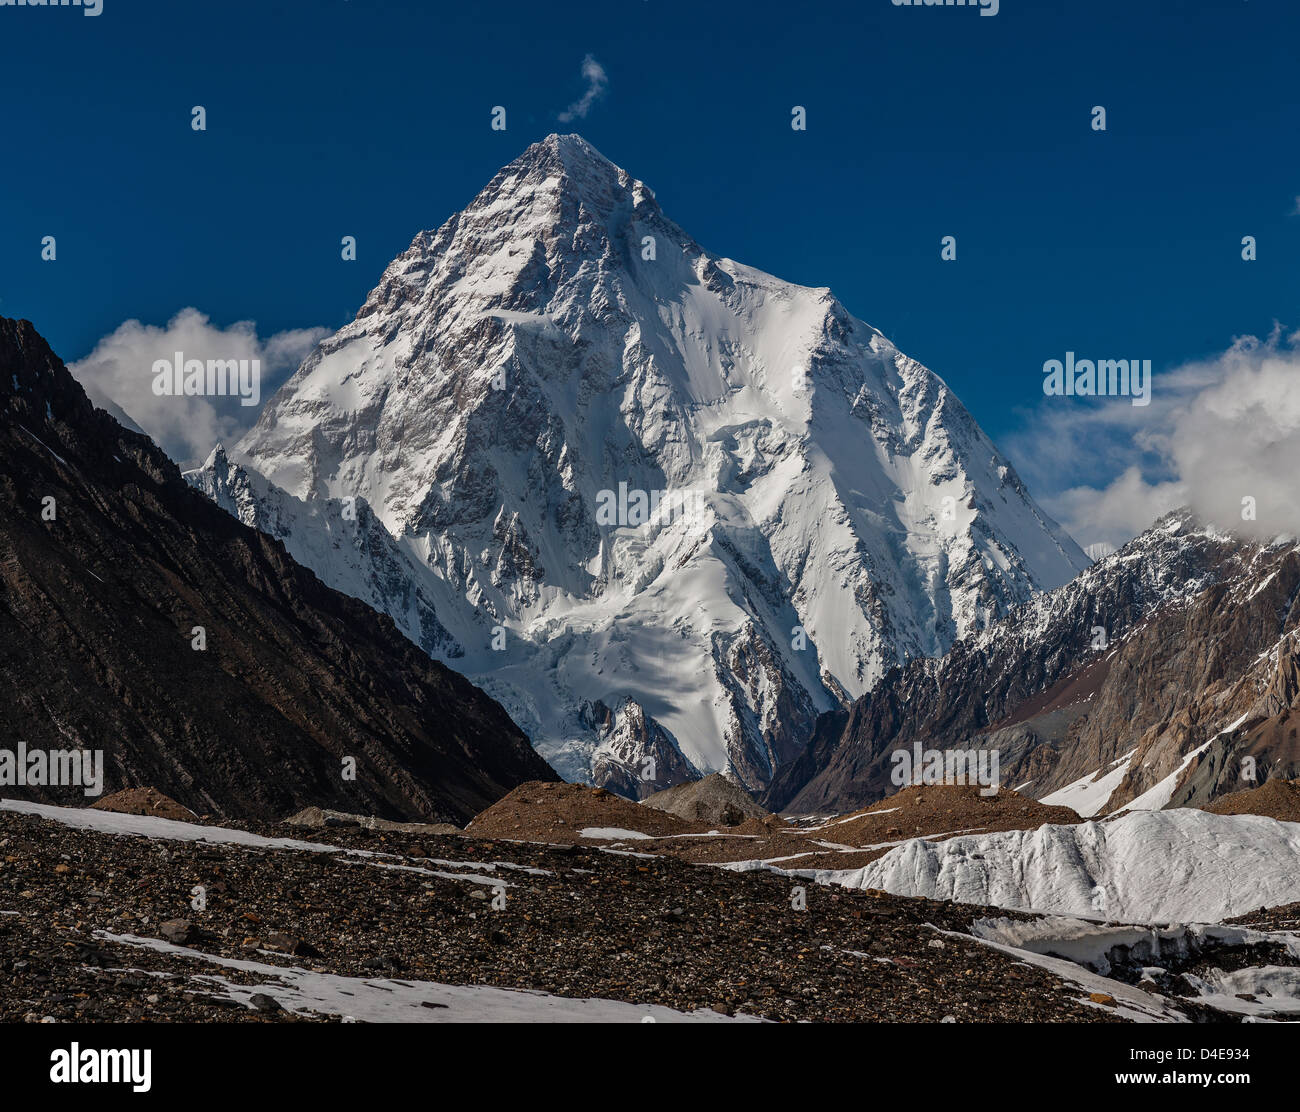 High Resolution photo of K2 8611m is the second-highest mountain on Earth, K2 is the highest point of the Karakoram - Stock Image